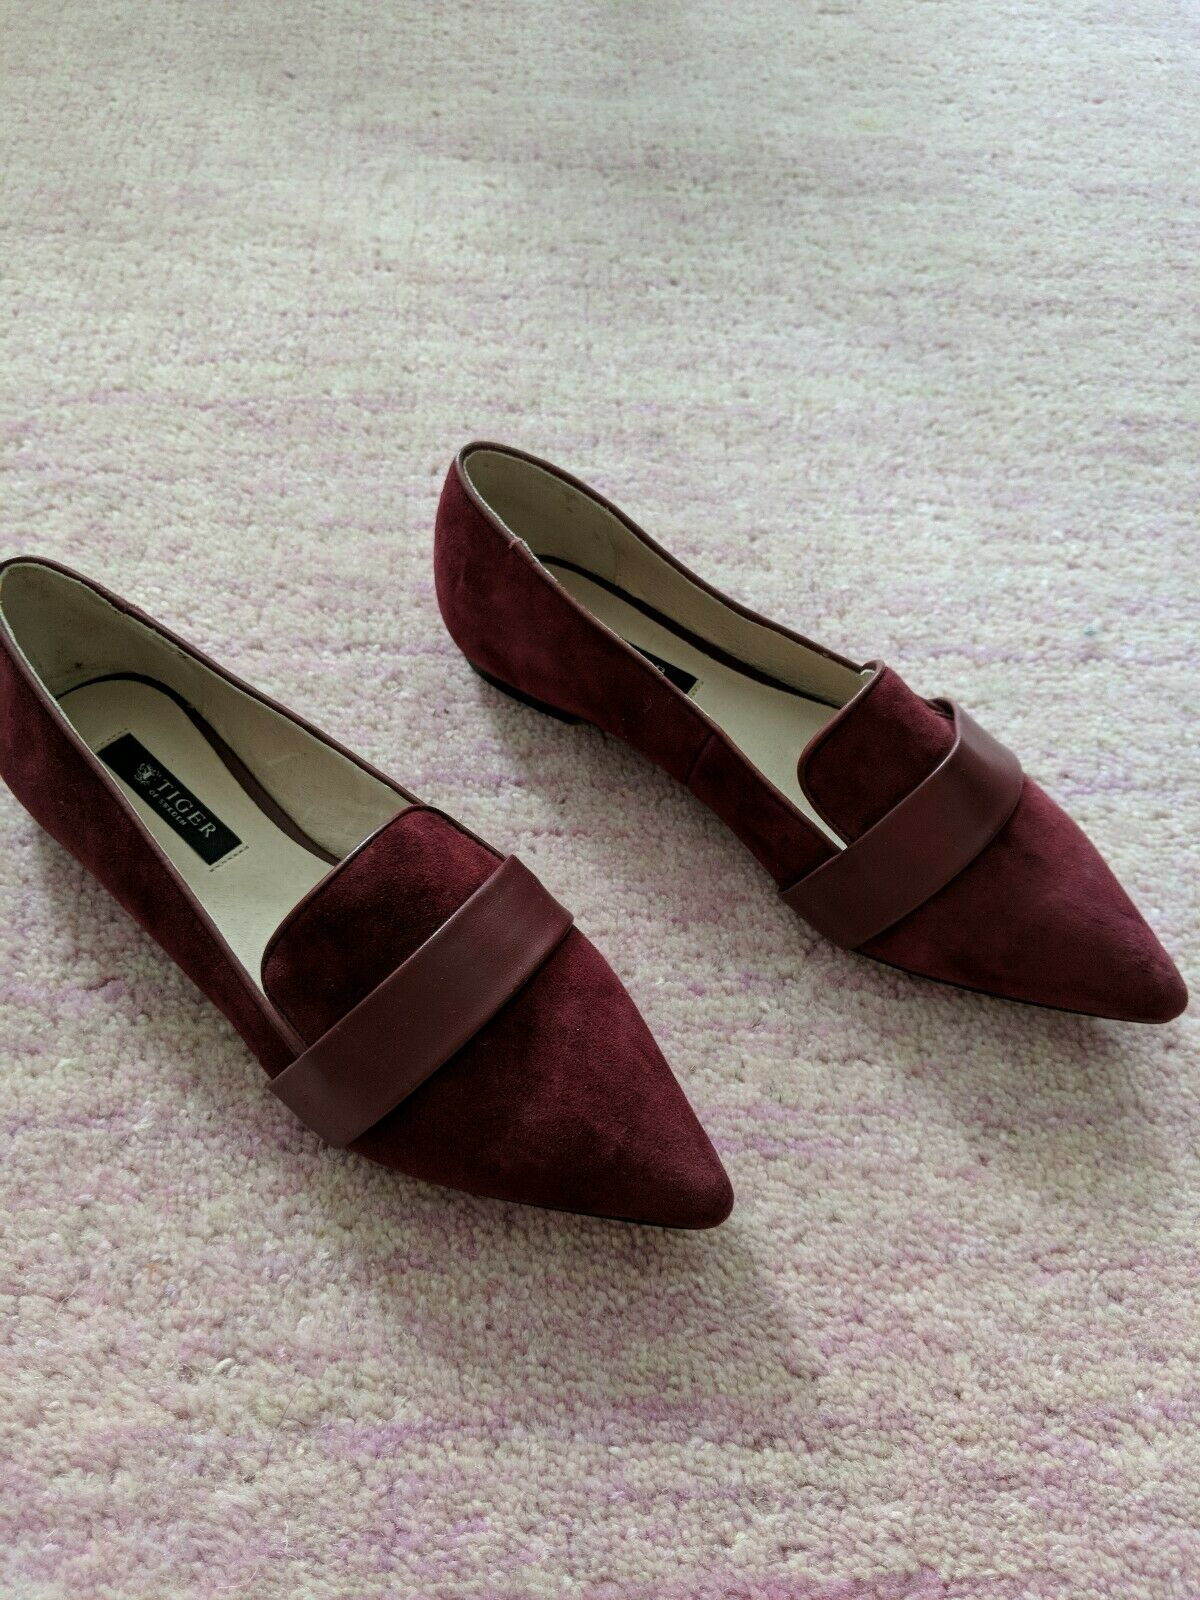 349 Tiger of Sweden Suede Leather Pointed Flats Size 37 Red Burgundy